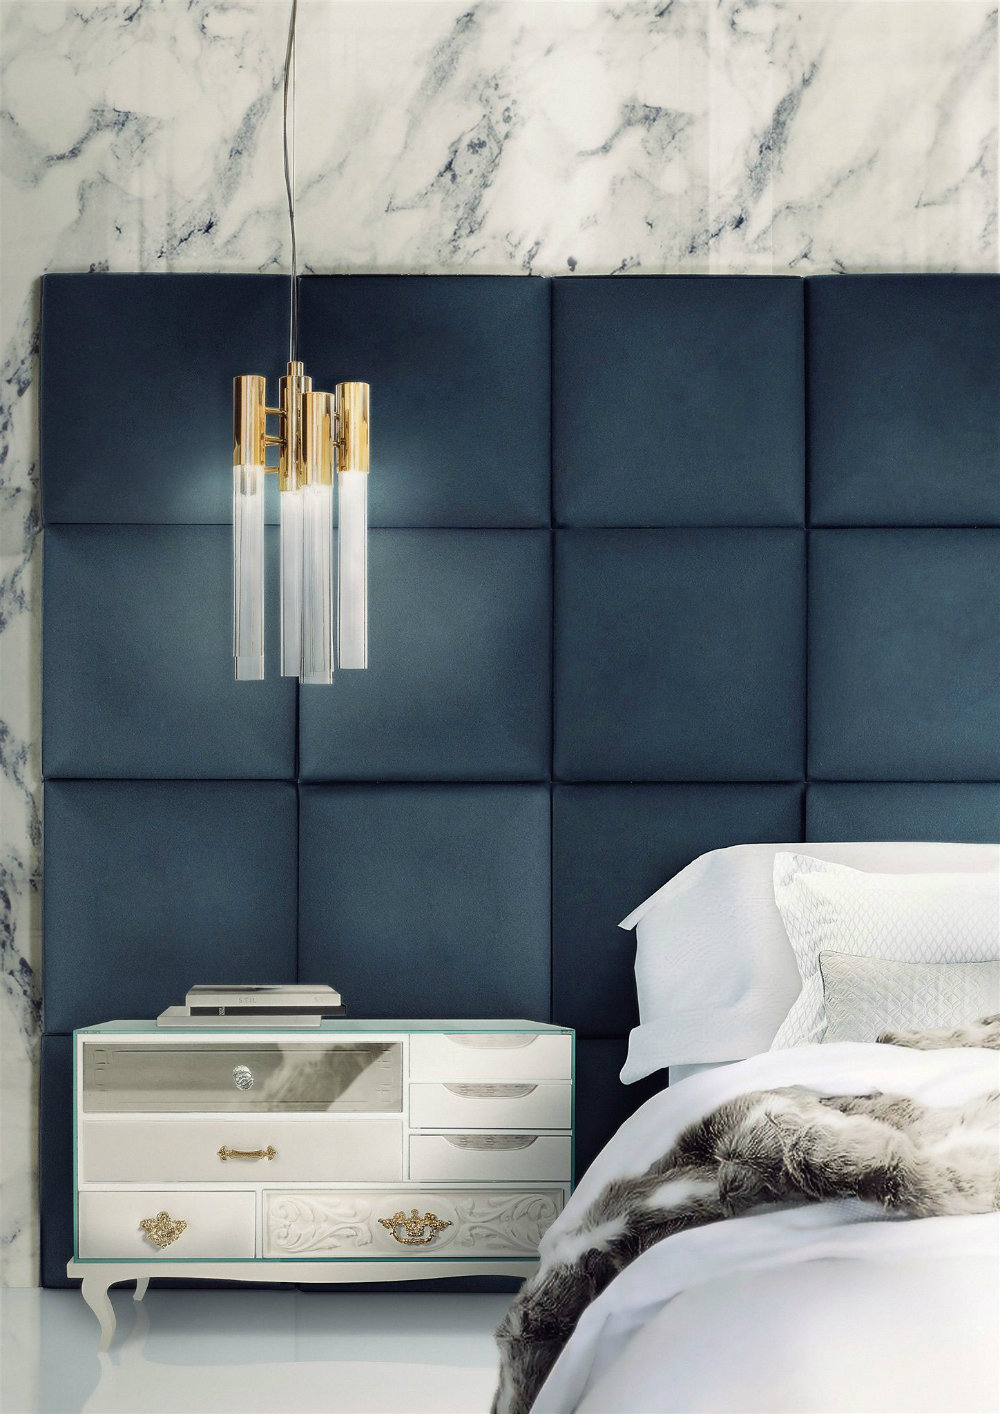 Light Up Your Bedroom With These 5 Modern Chandeliers